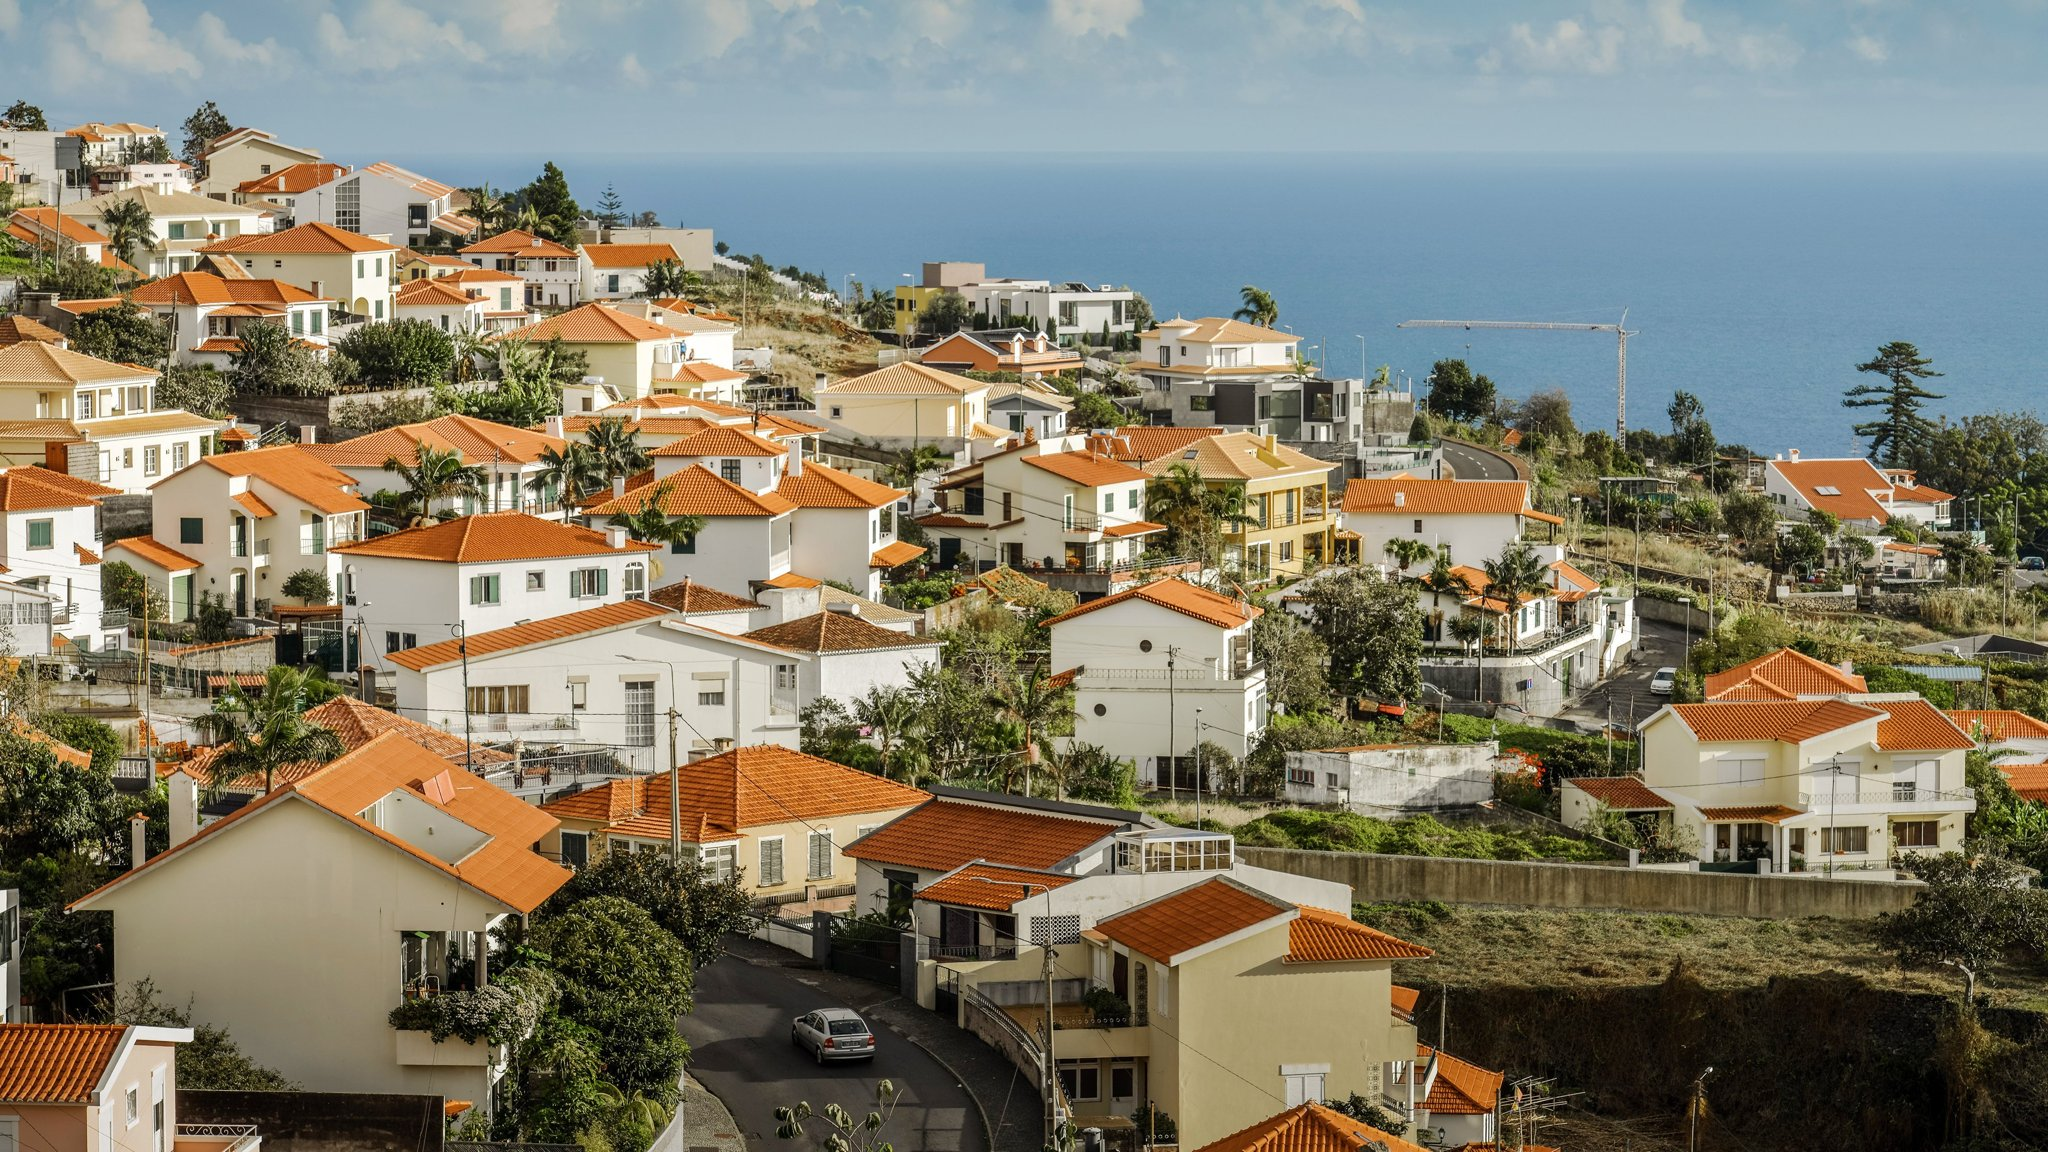 Portugal set to curb tax breaks for wealthy foreigners